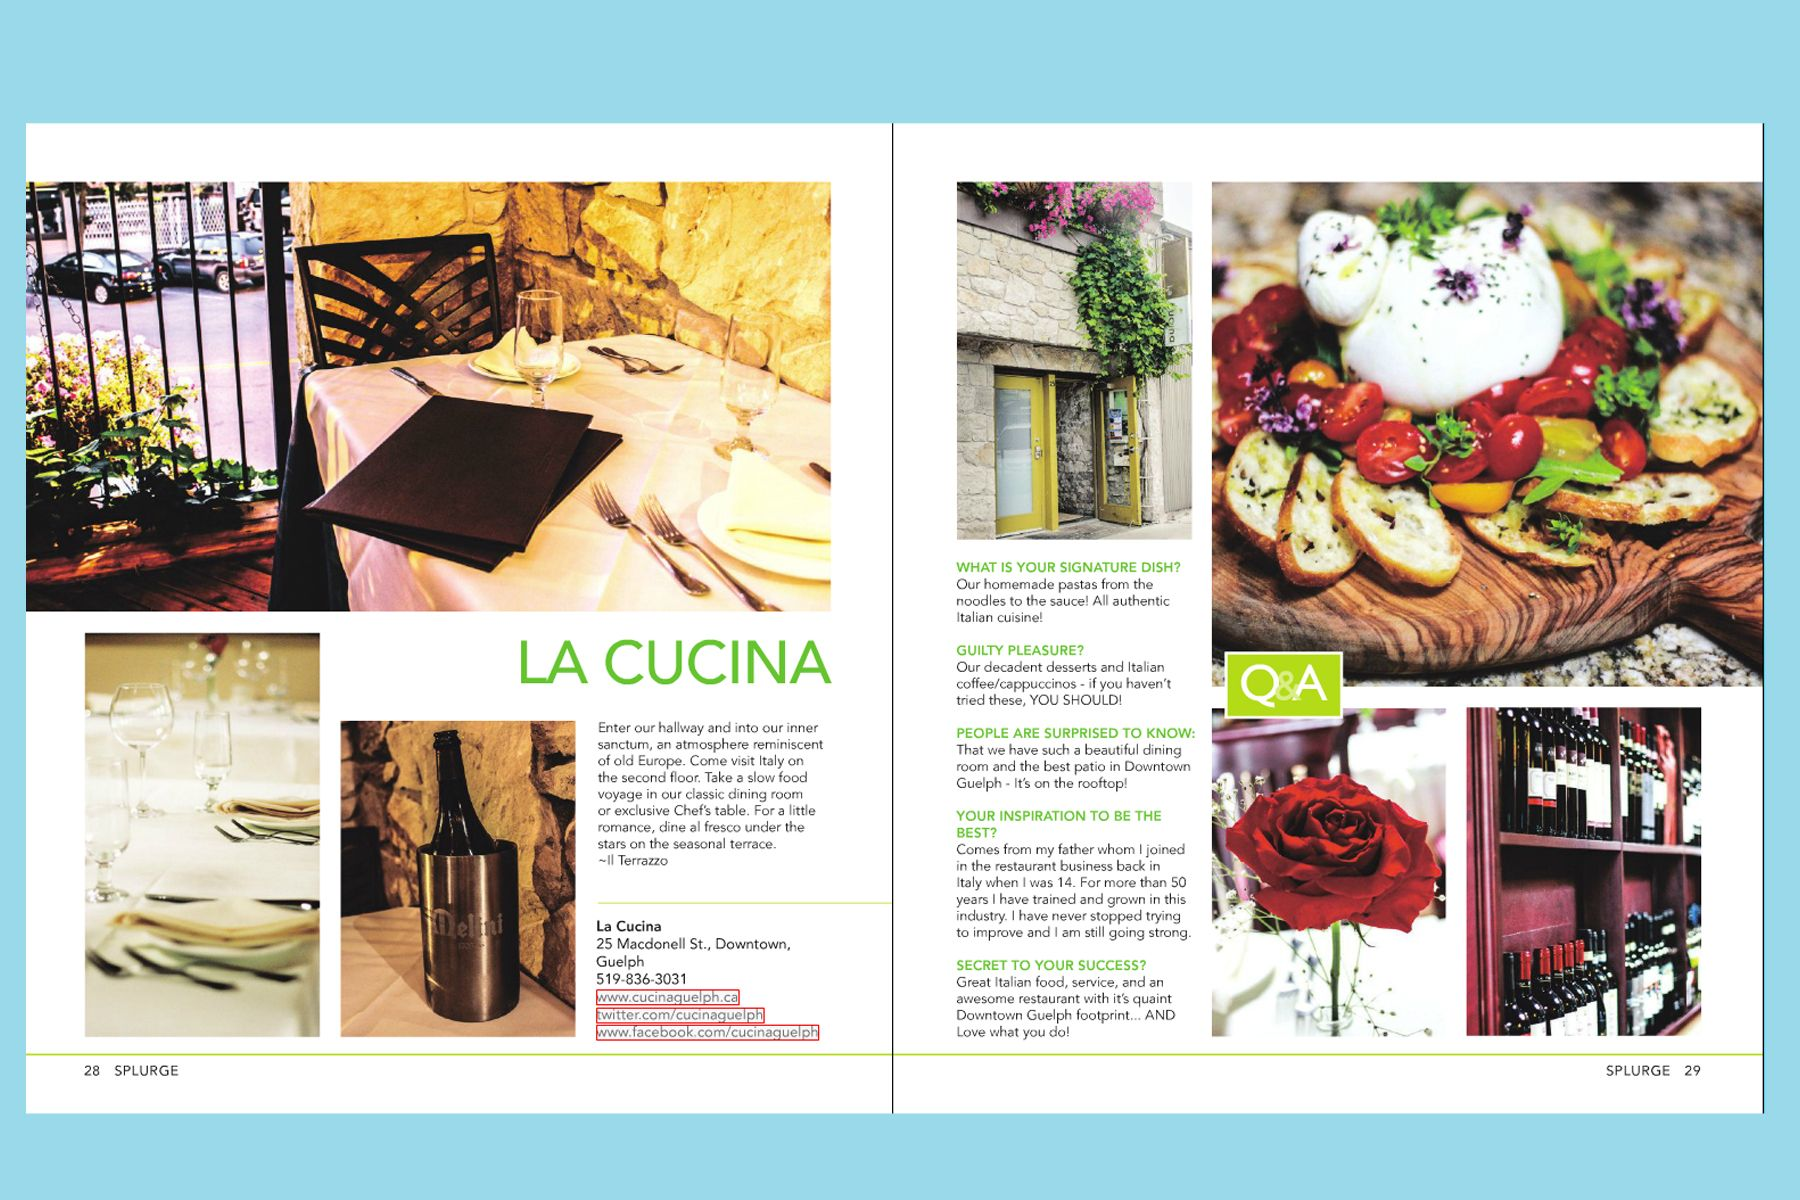 La Cucina Restaurant Guelph Ontario Go For A Fancy Dinner At La Cucina From Splurge 2013 Things To